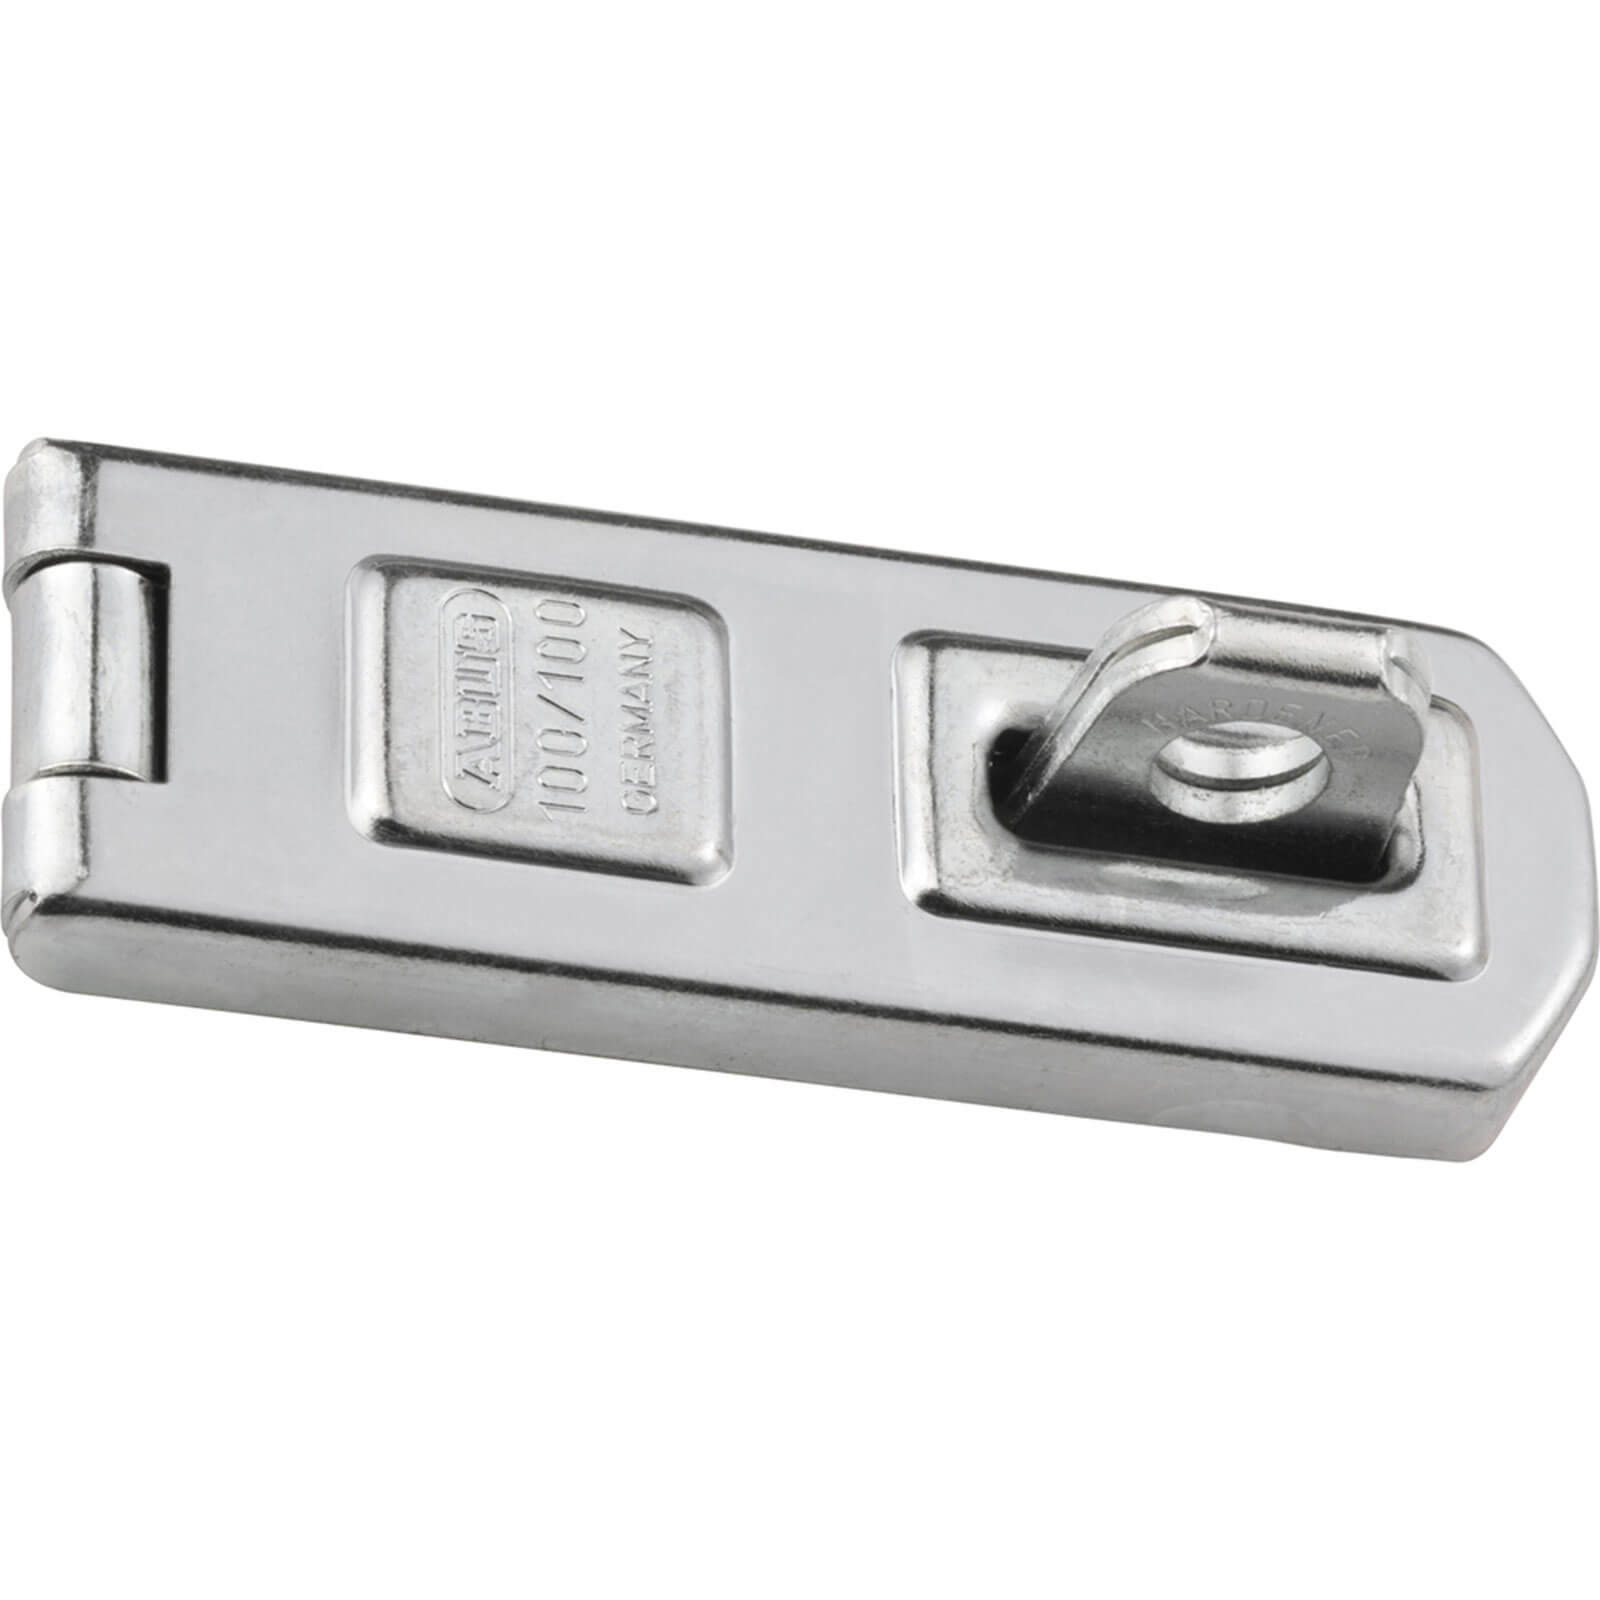 Image of Abus 100 Series Tradition Hasp & Staple 100mm